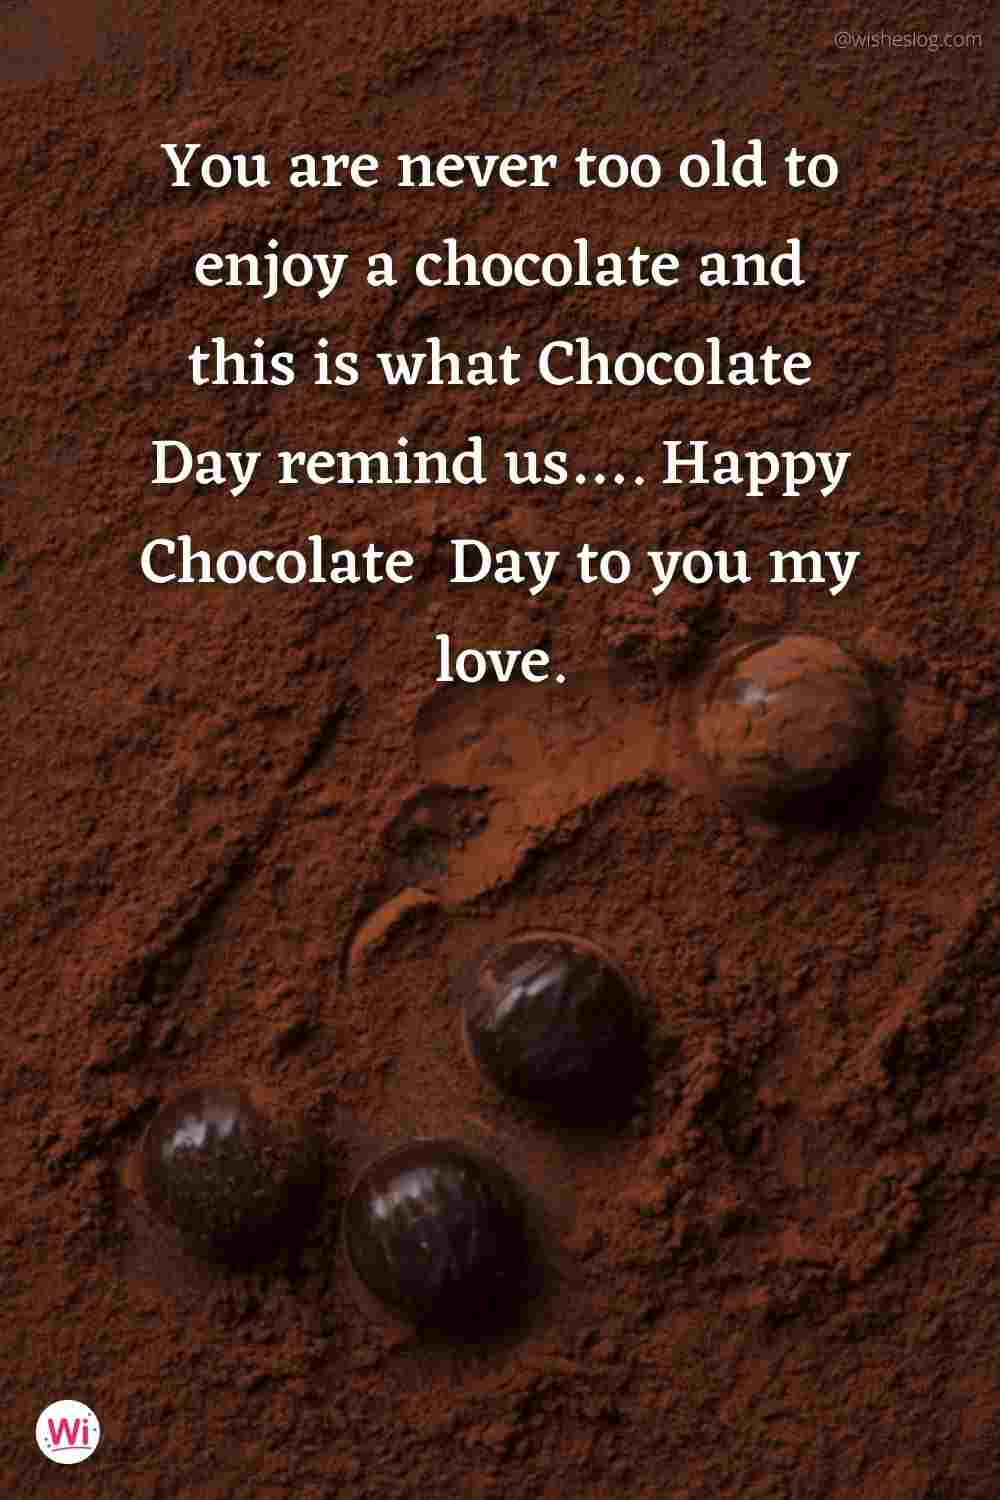 happy chocolate day wishes quotes for girlfriend